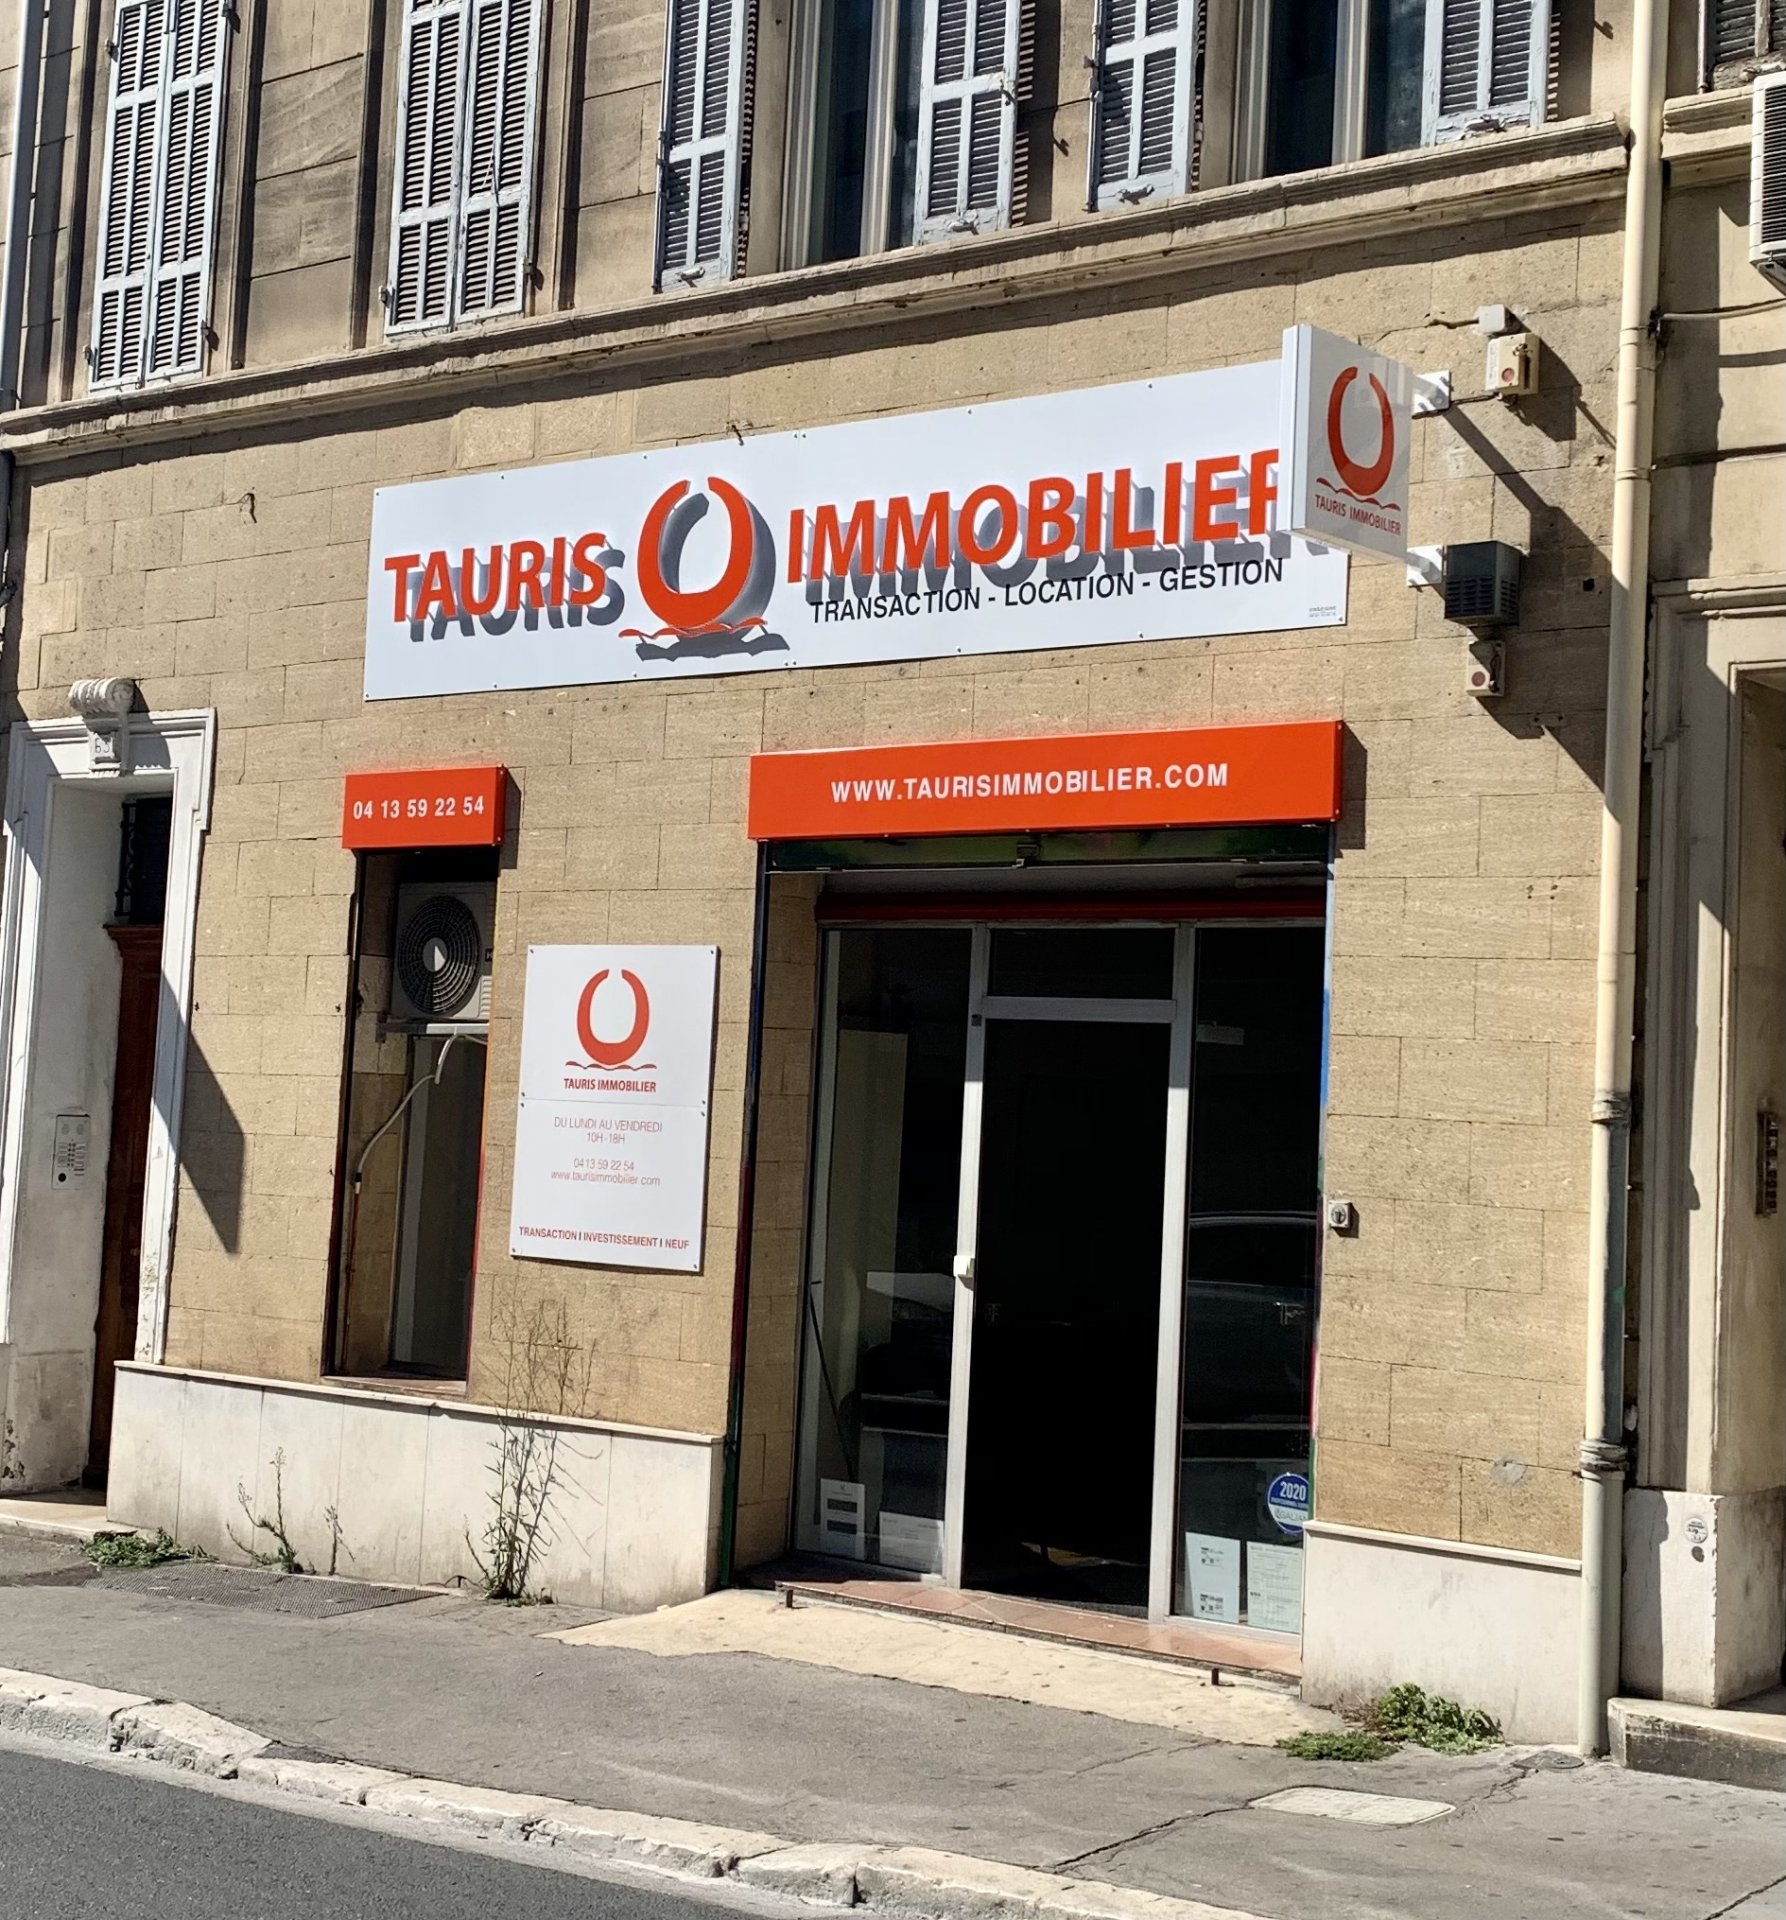 Tauris Immobilier